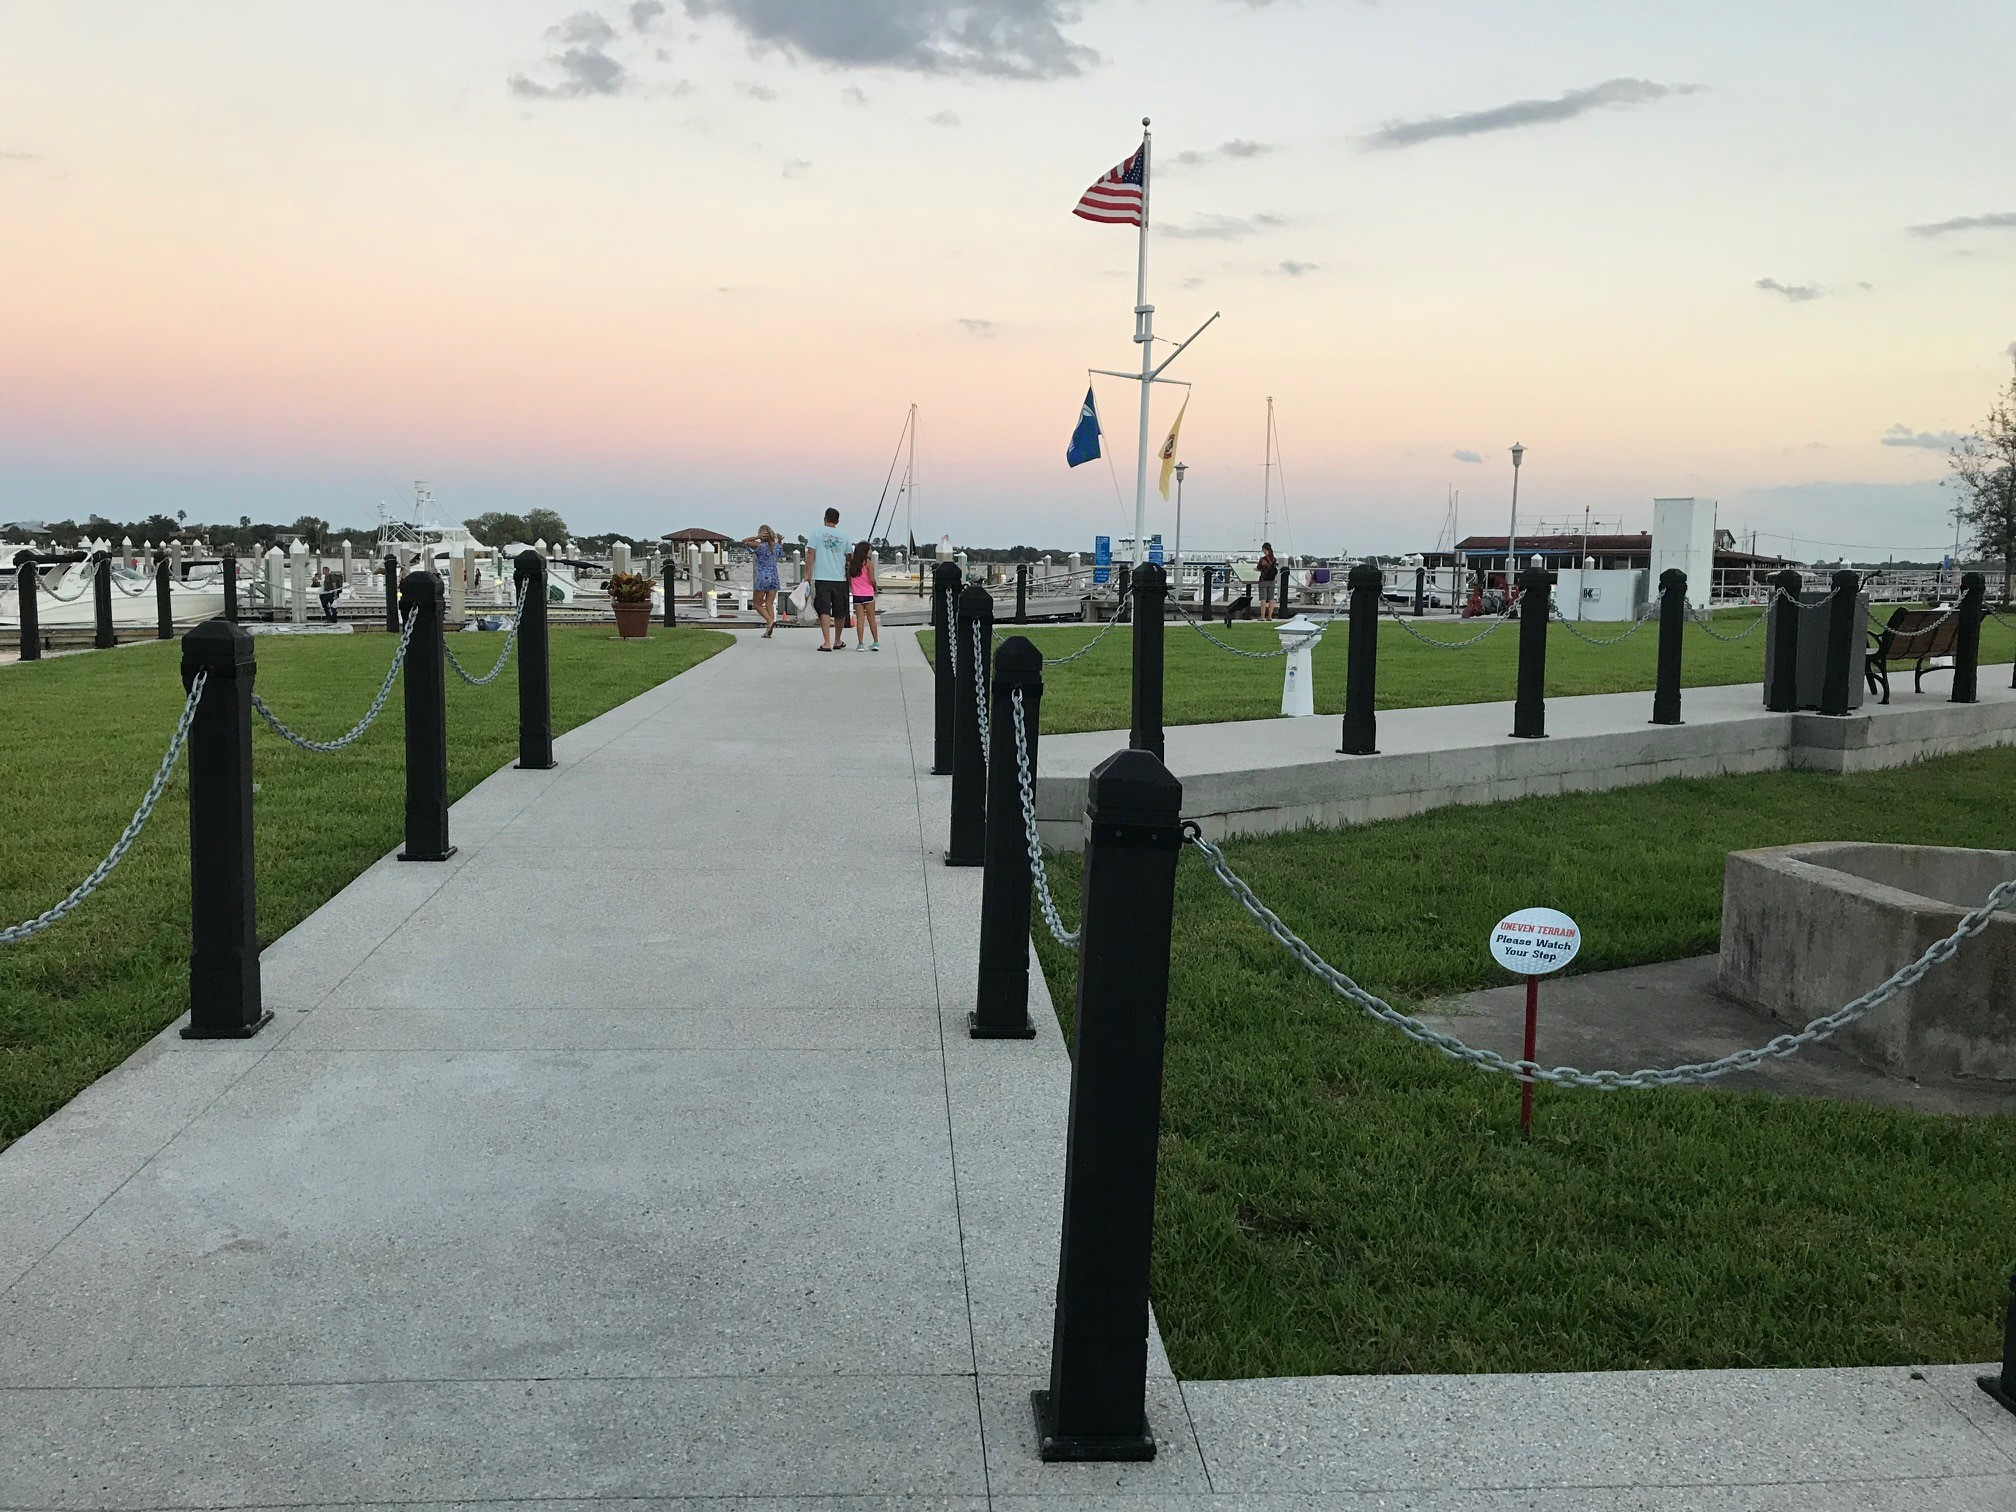 The bayfront park in downtown City of St. Augustine showing the sidewalks lined with poles and chains and a family in the background next to the American flag